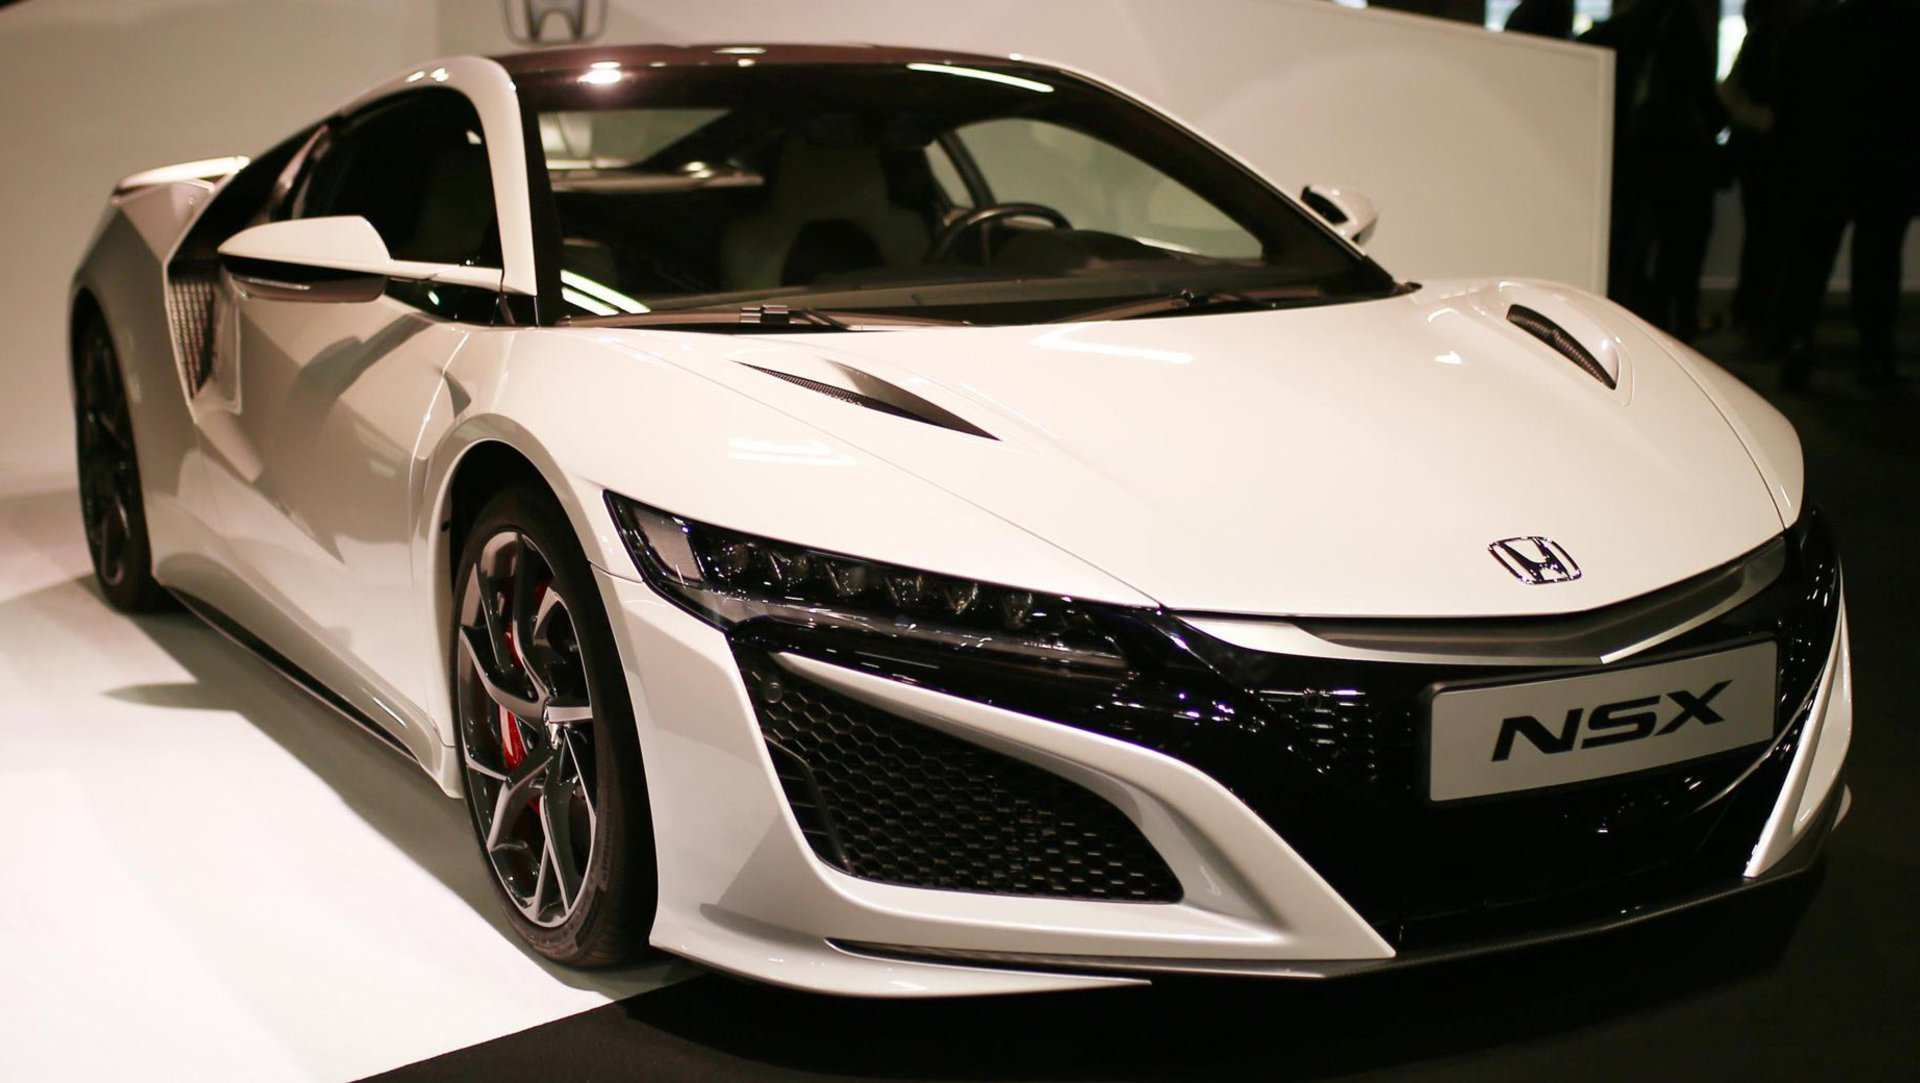 82 Best Review 2019 Honda Sports Car Price for 2019 Honda Sports Car